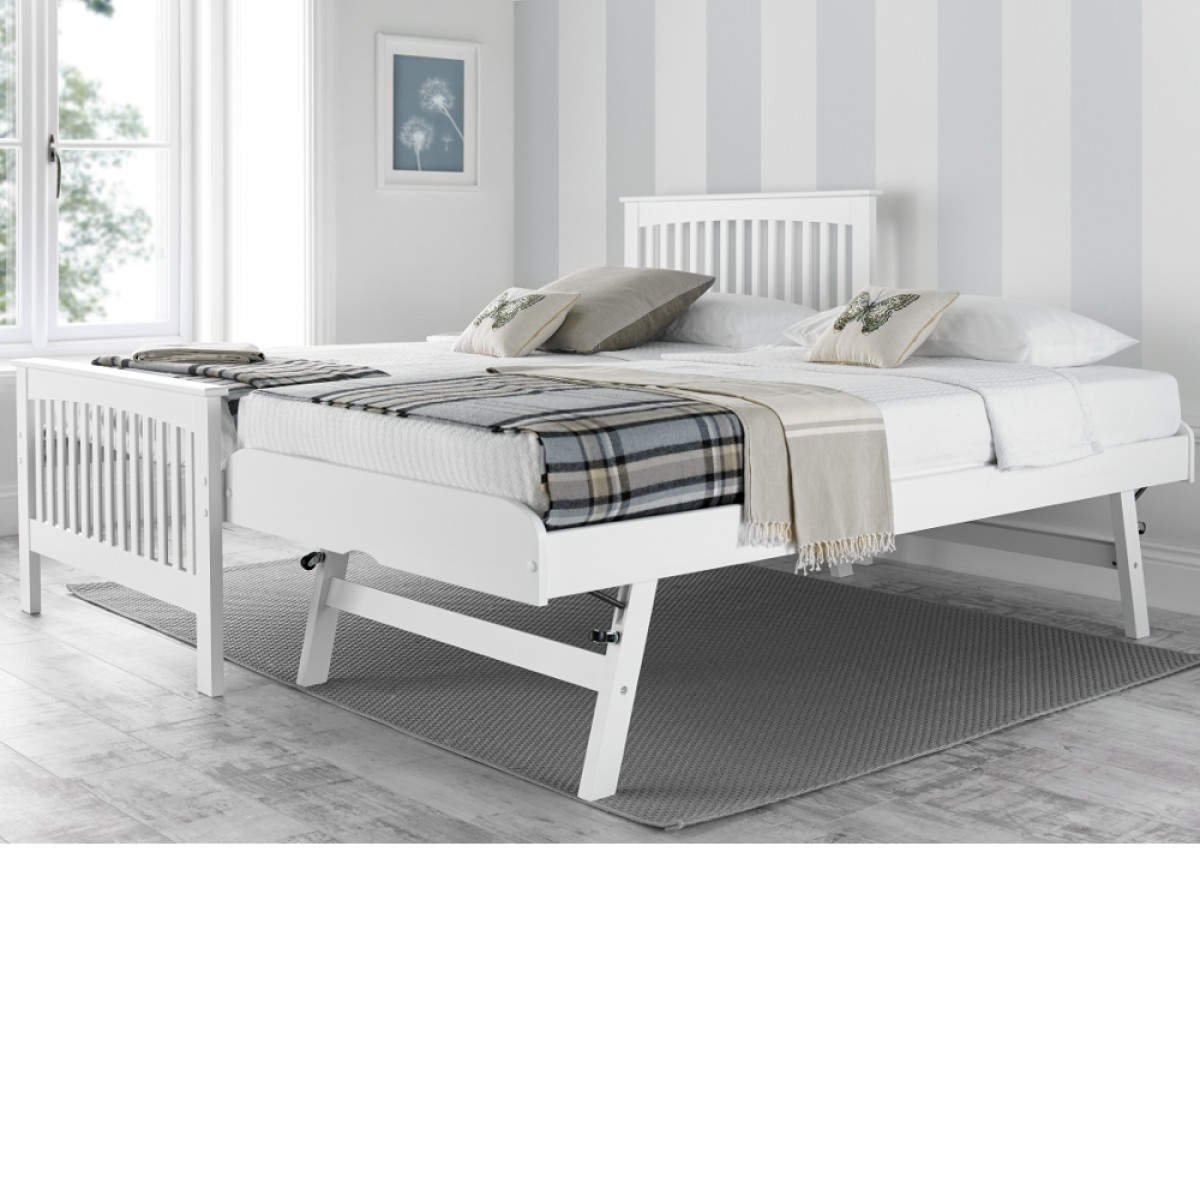 toronto white wooden guest bed and trundle 3ft single 17073 | amelia white wooden guest bed 1